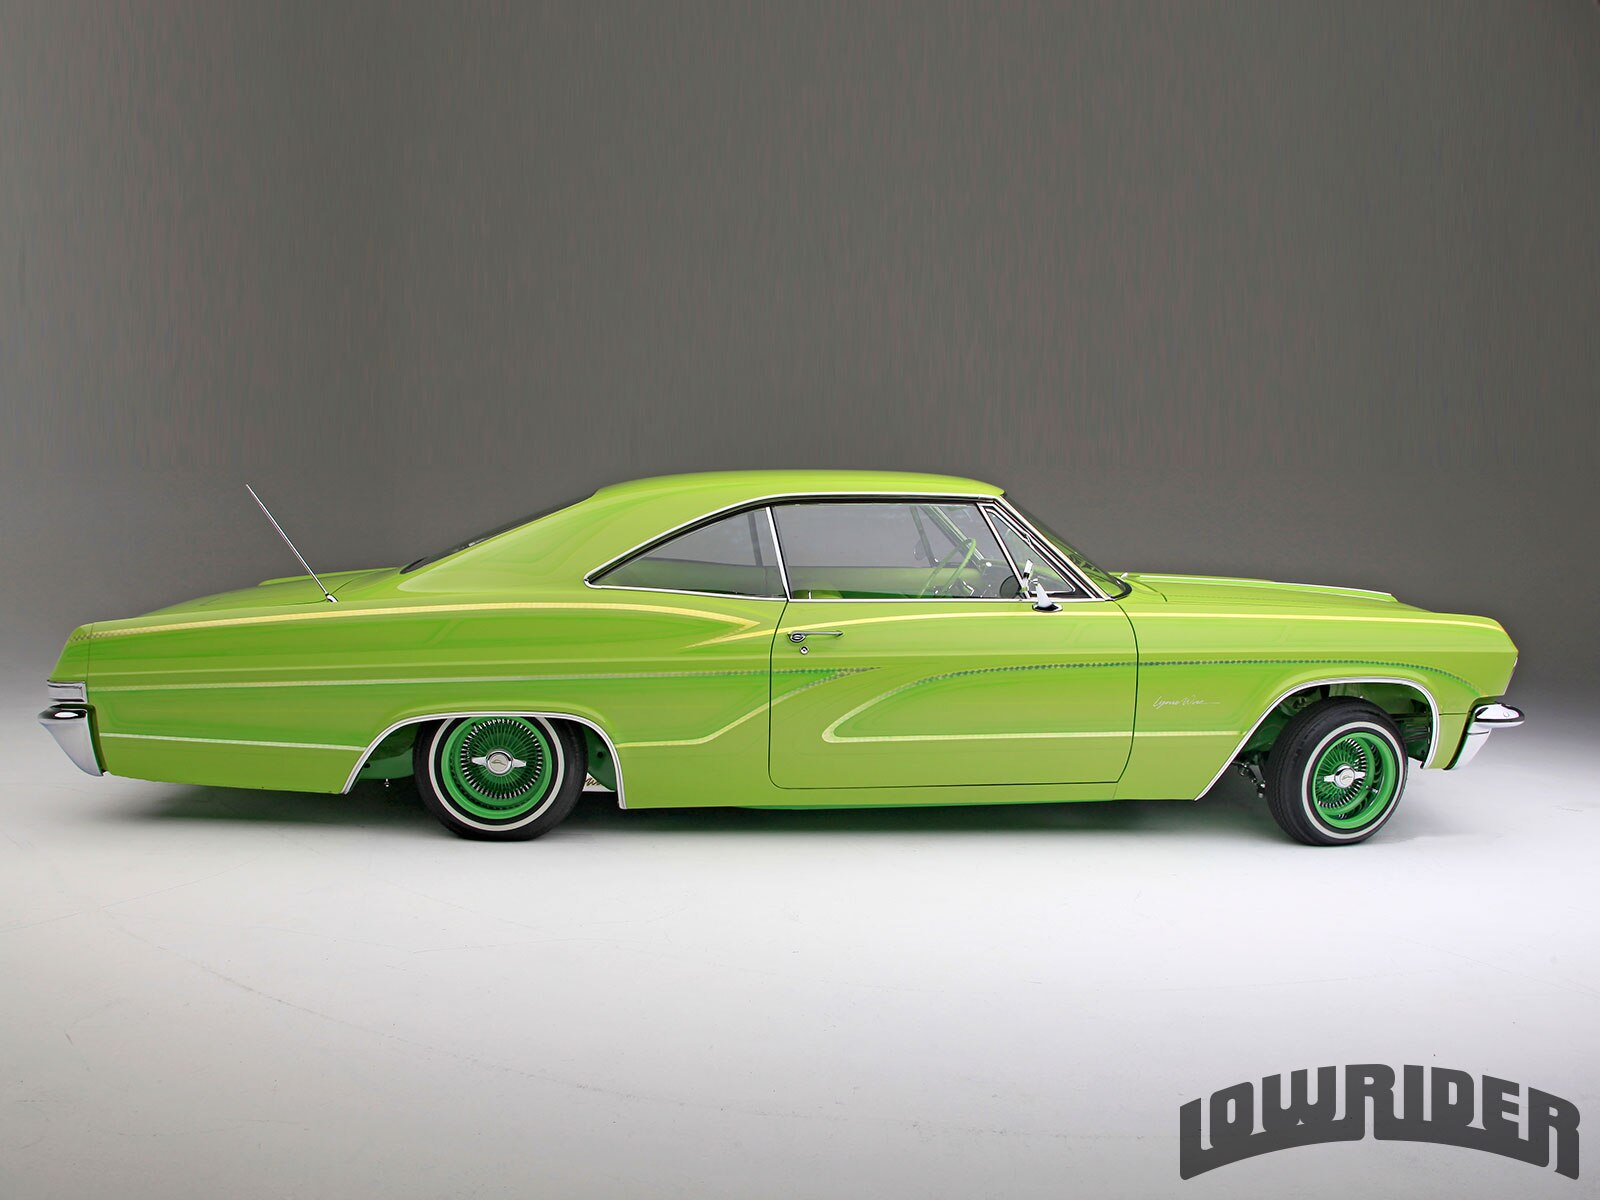 1965-chevrolet-impala-right-side-view3